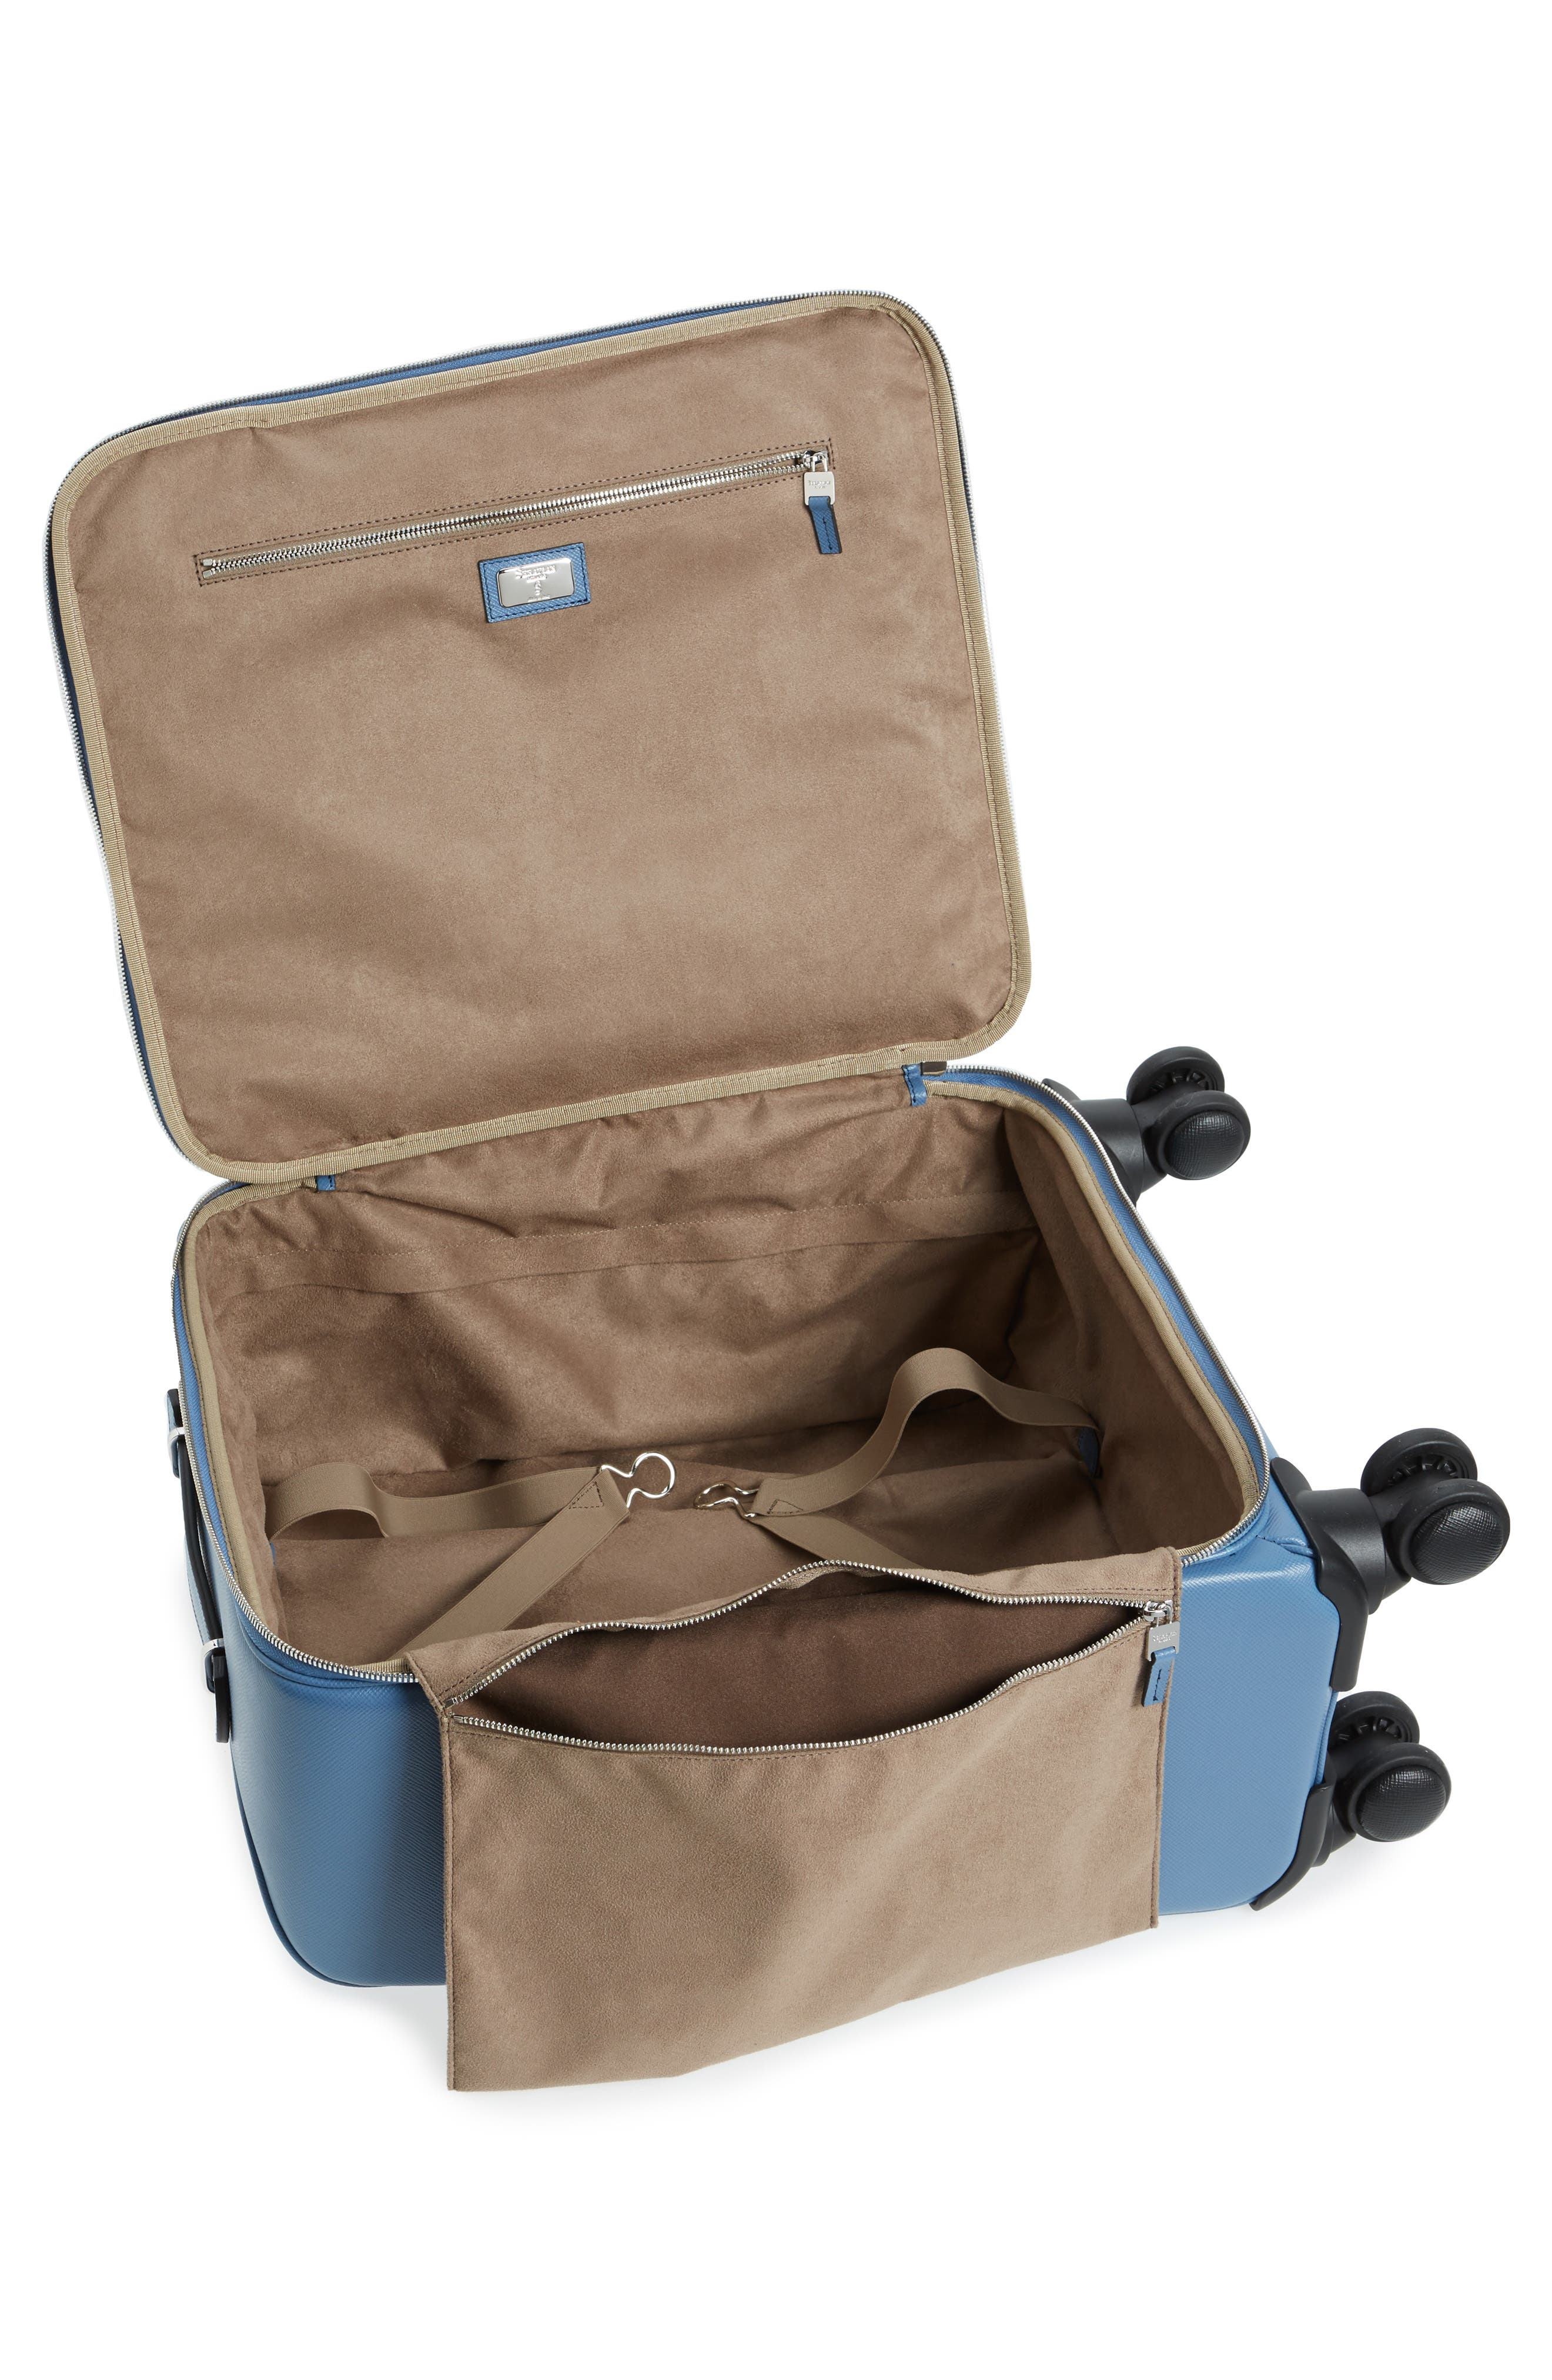 Trolley Spinner Wheeled Carry-On Suitcase,                             Alternate thumbnail 2, color,                             Blue Jeans